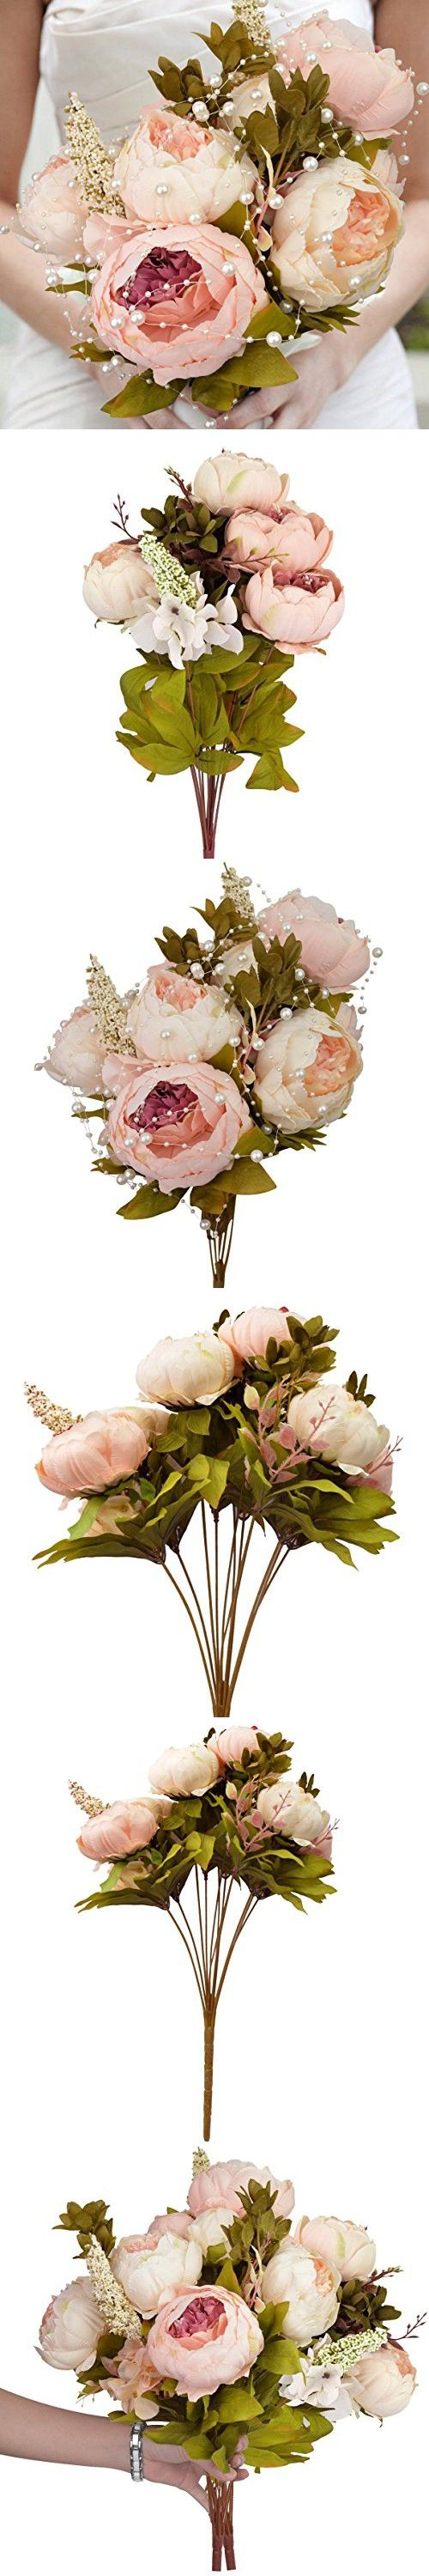 Nobel Vintage Artificial Peony, Hmxpls Silk Flowers Bouquet Home Wedding Decoration Dining-table Hotel party Wedding DIY Craft fake flores marriage decoration